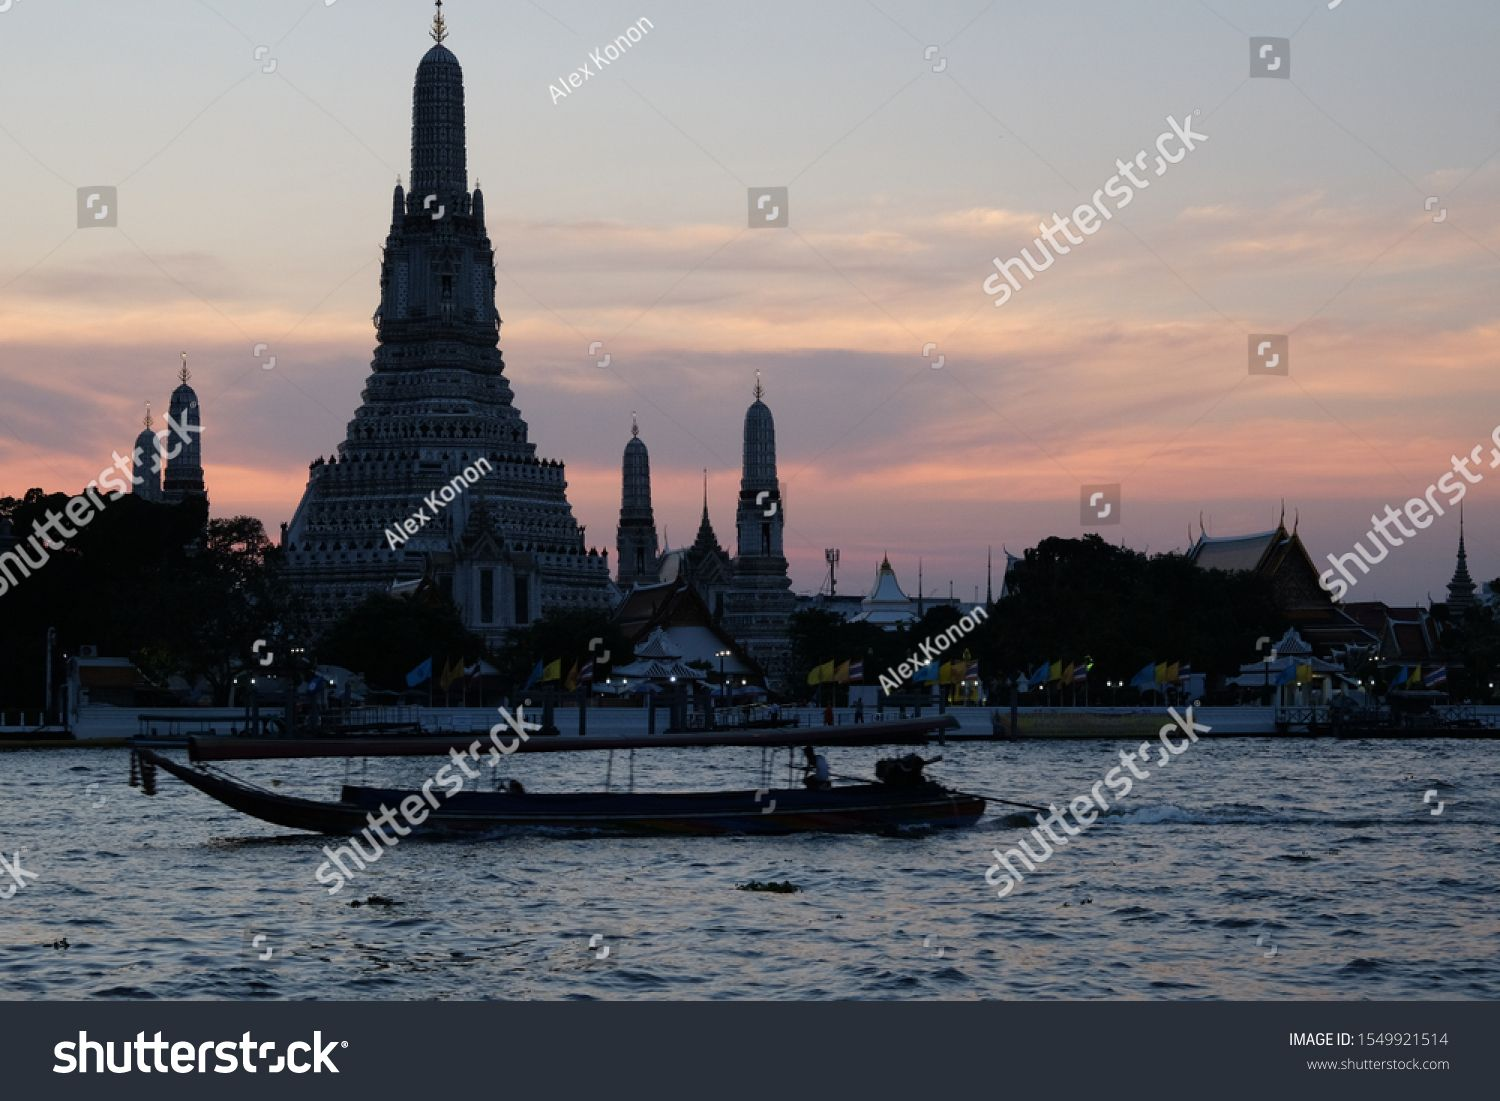 Bangkok, Thailand, December 25, 2018. Boats sail on the Chao Phraya river in the late evening. Wat